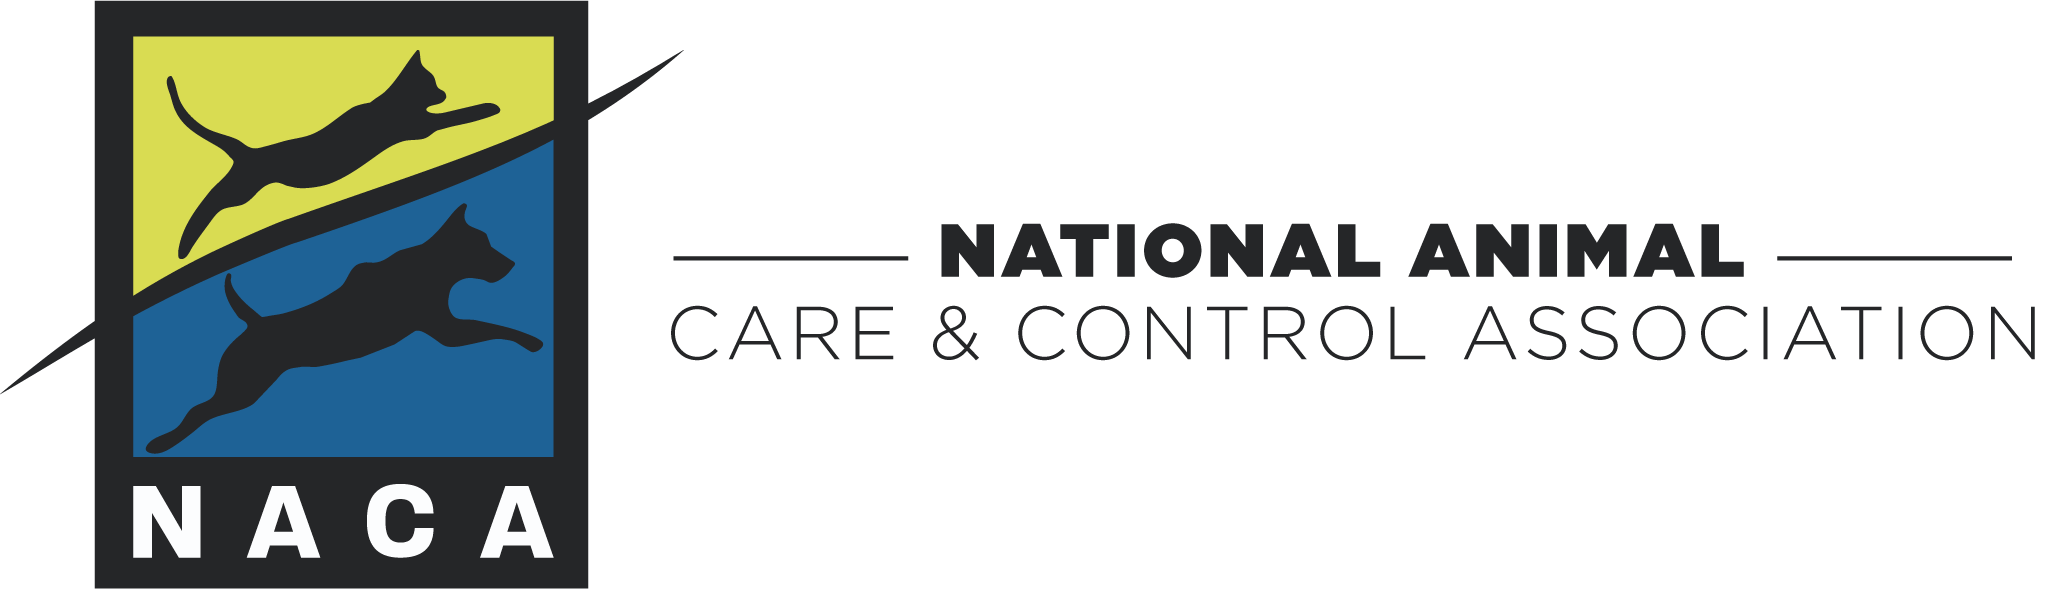 The National Animal Care & Control Association Conference